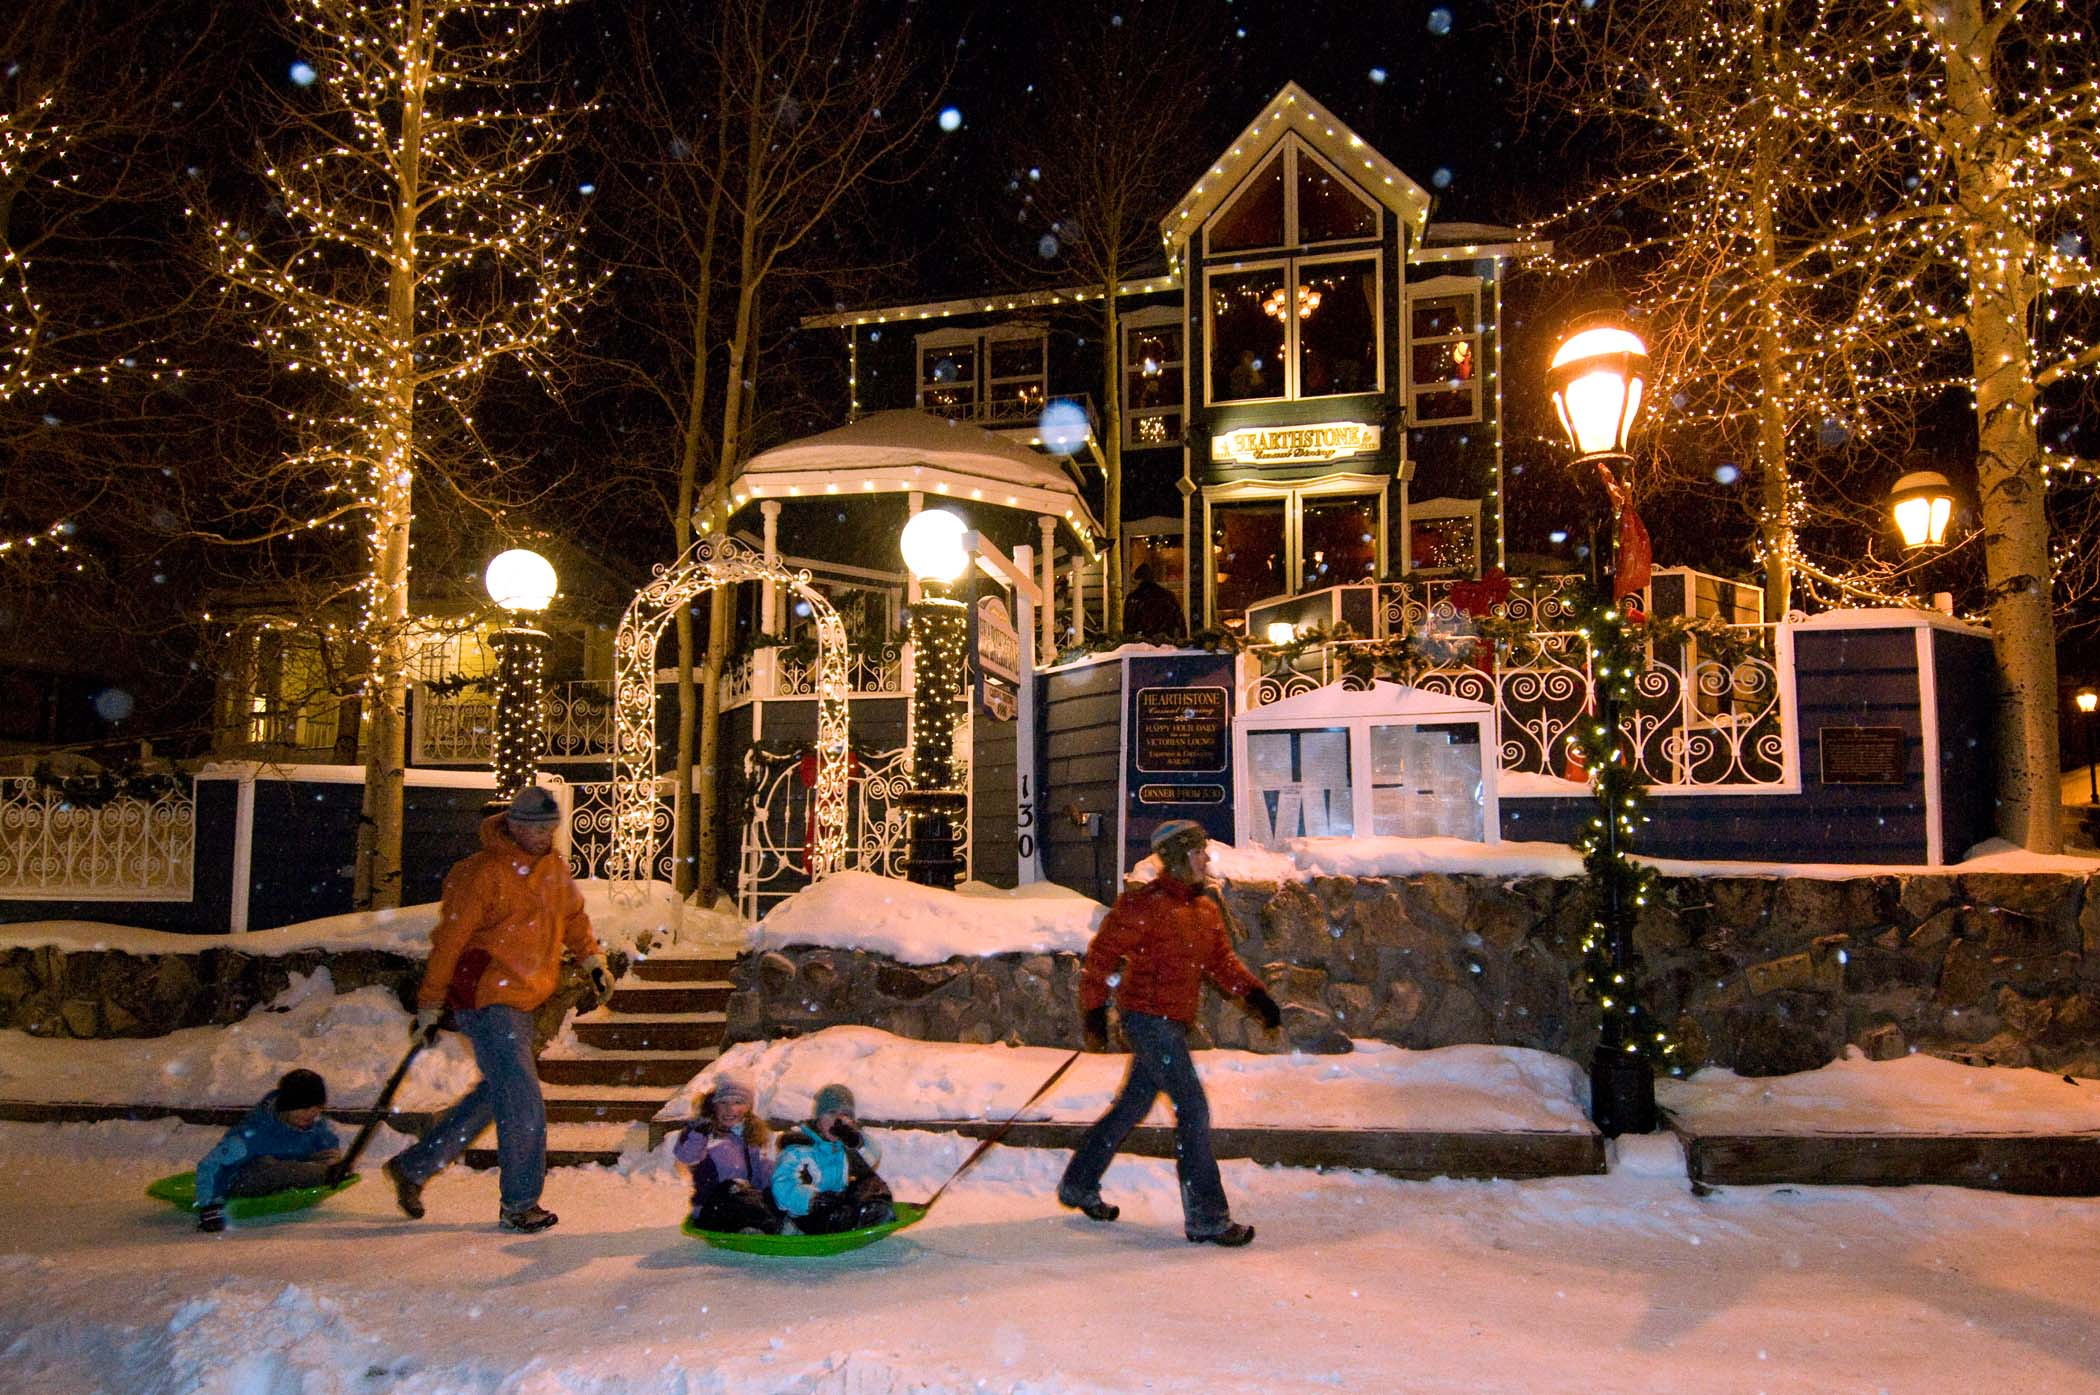 fresh snow and winter activities make christmas in breckenridge the most wonderful time of the year looking for a romantic evening during your holiday - Breckenridge Christmas